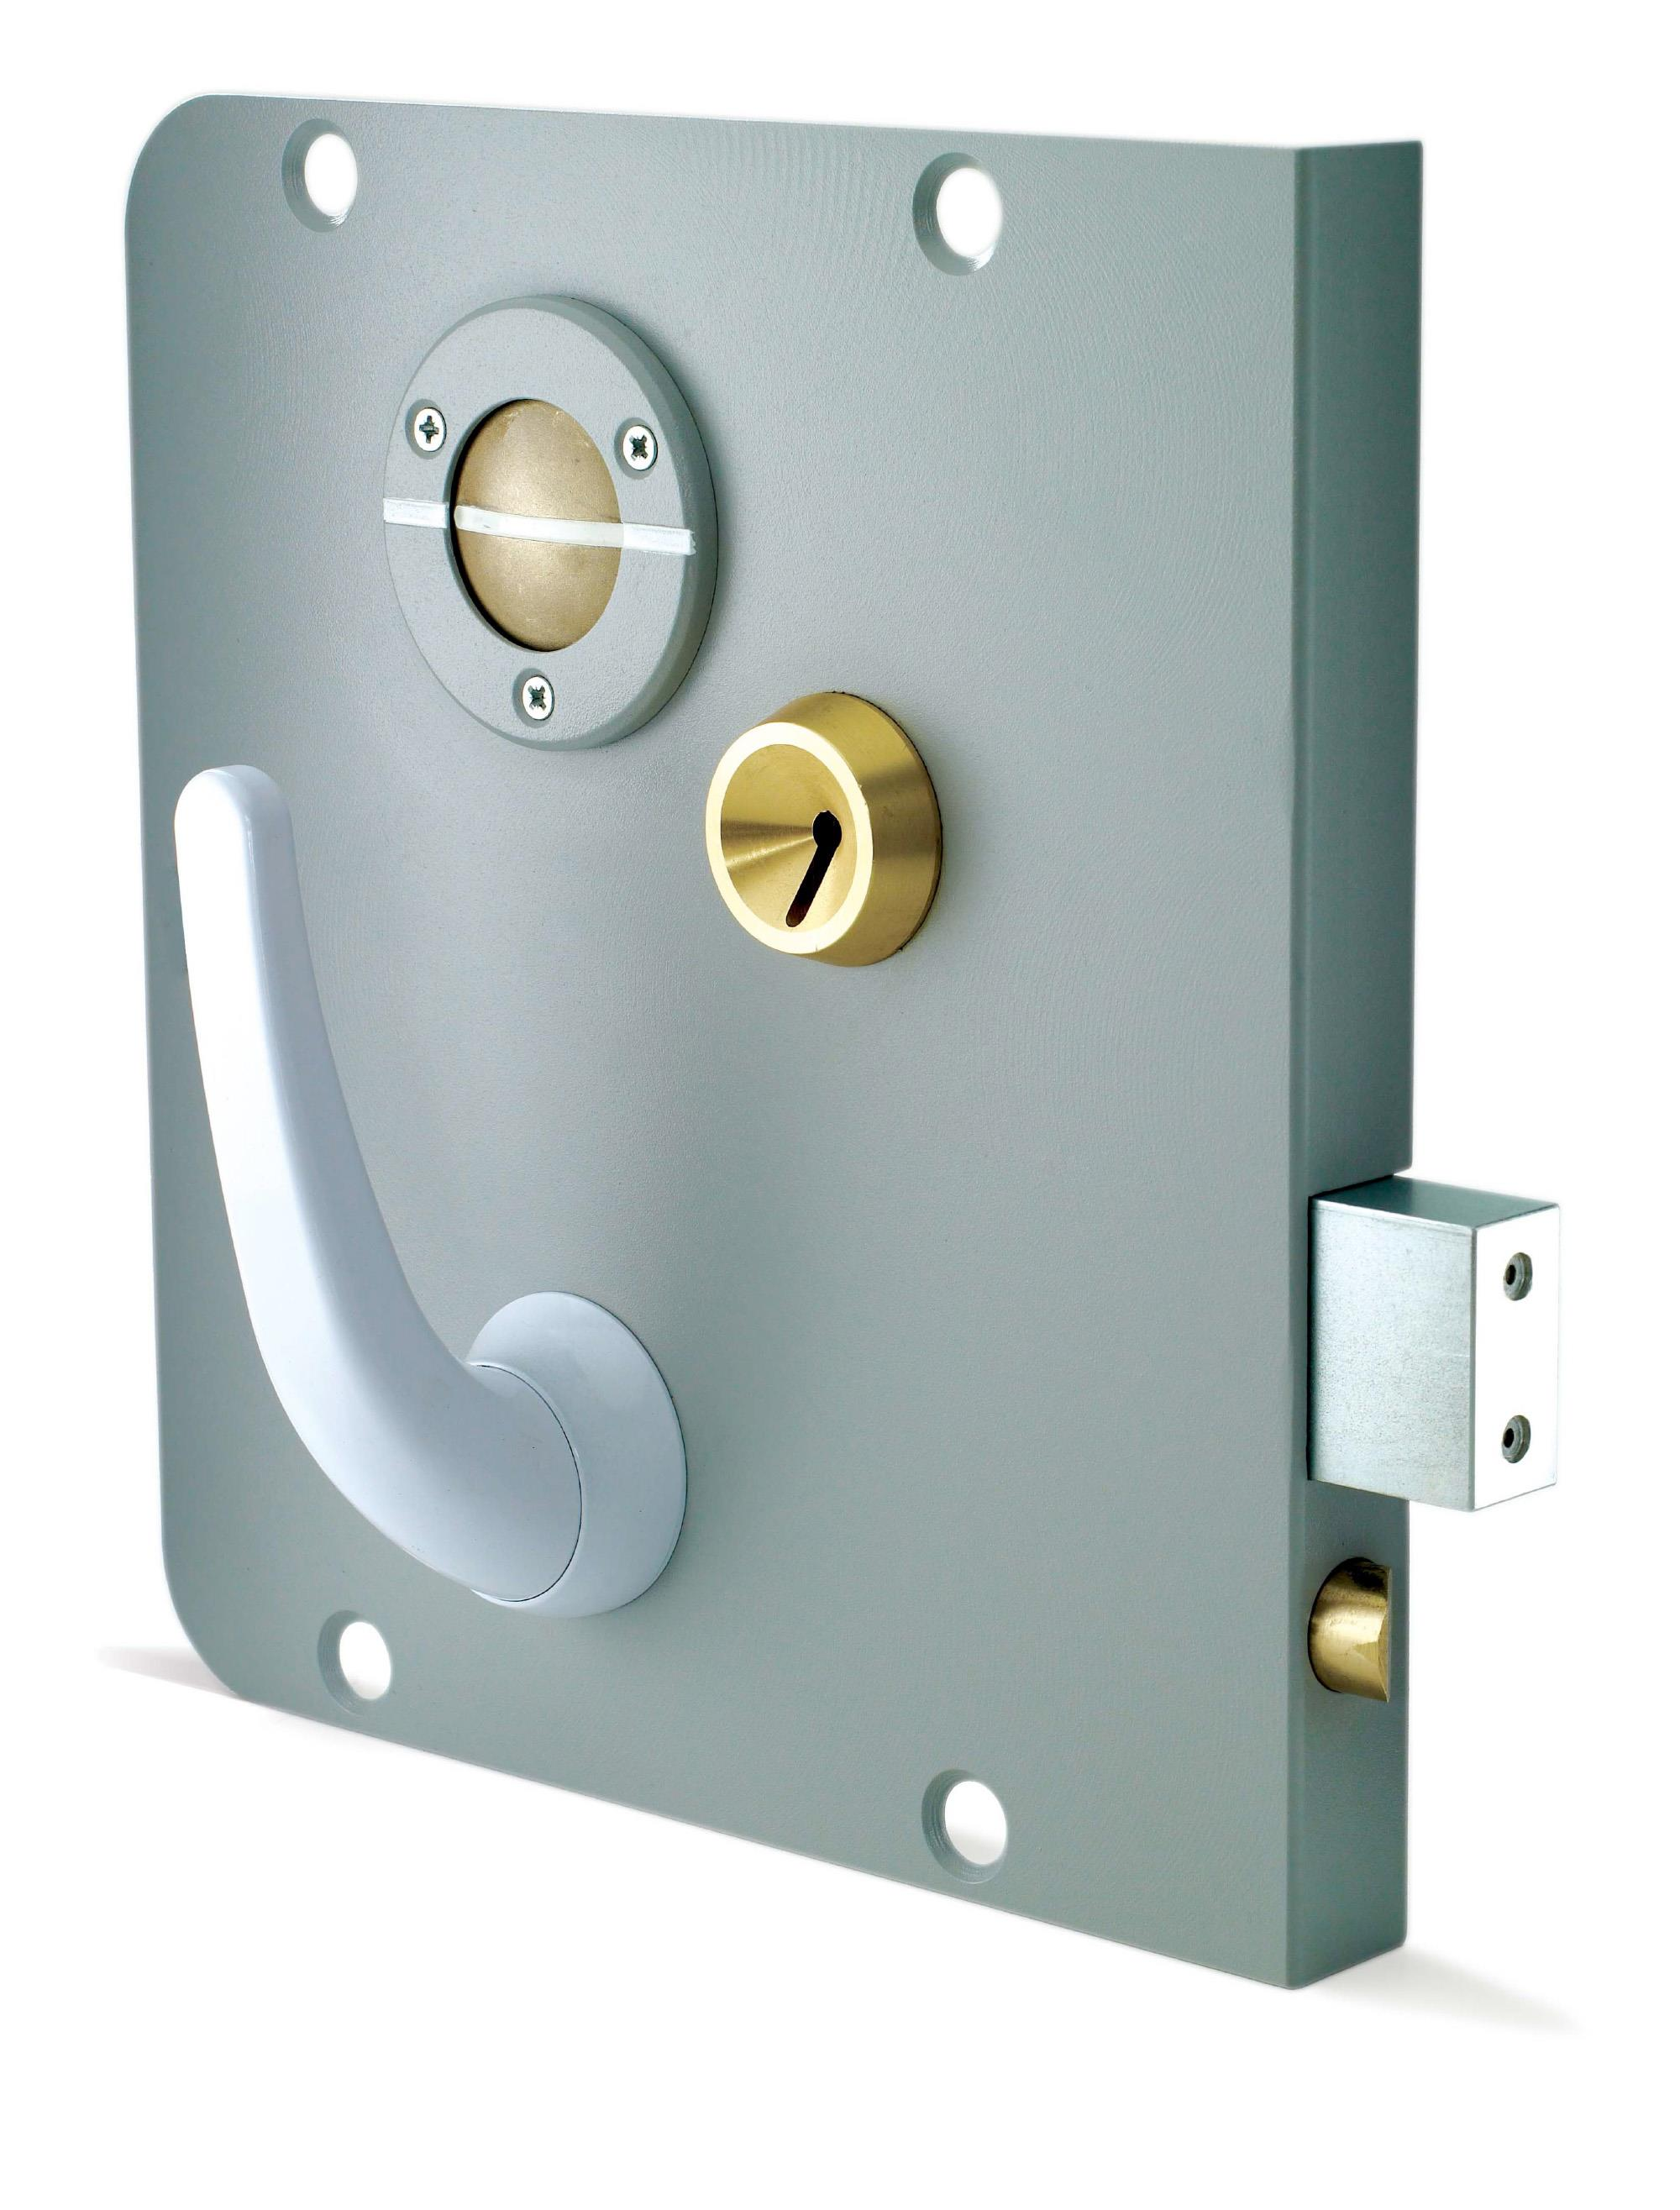 4L55/4L56 - Mechanical Slam Action Cell Lock